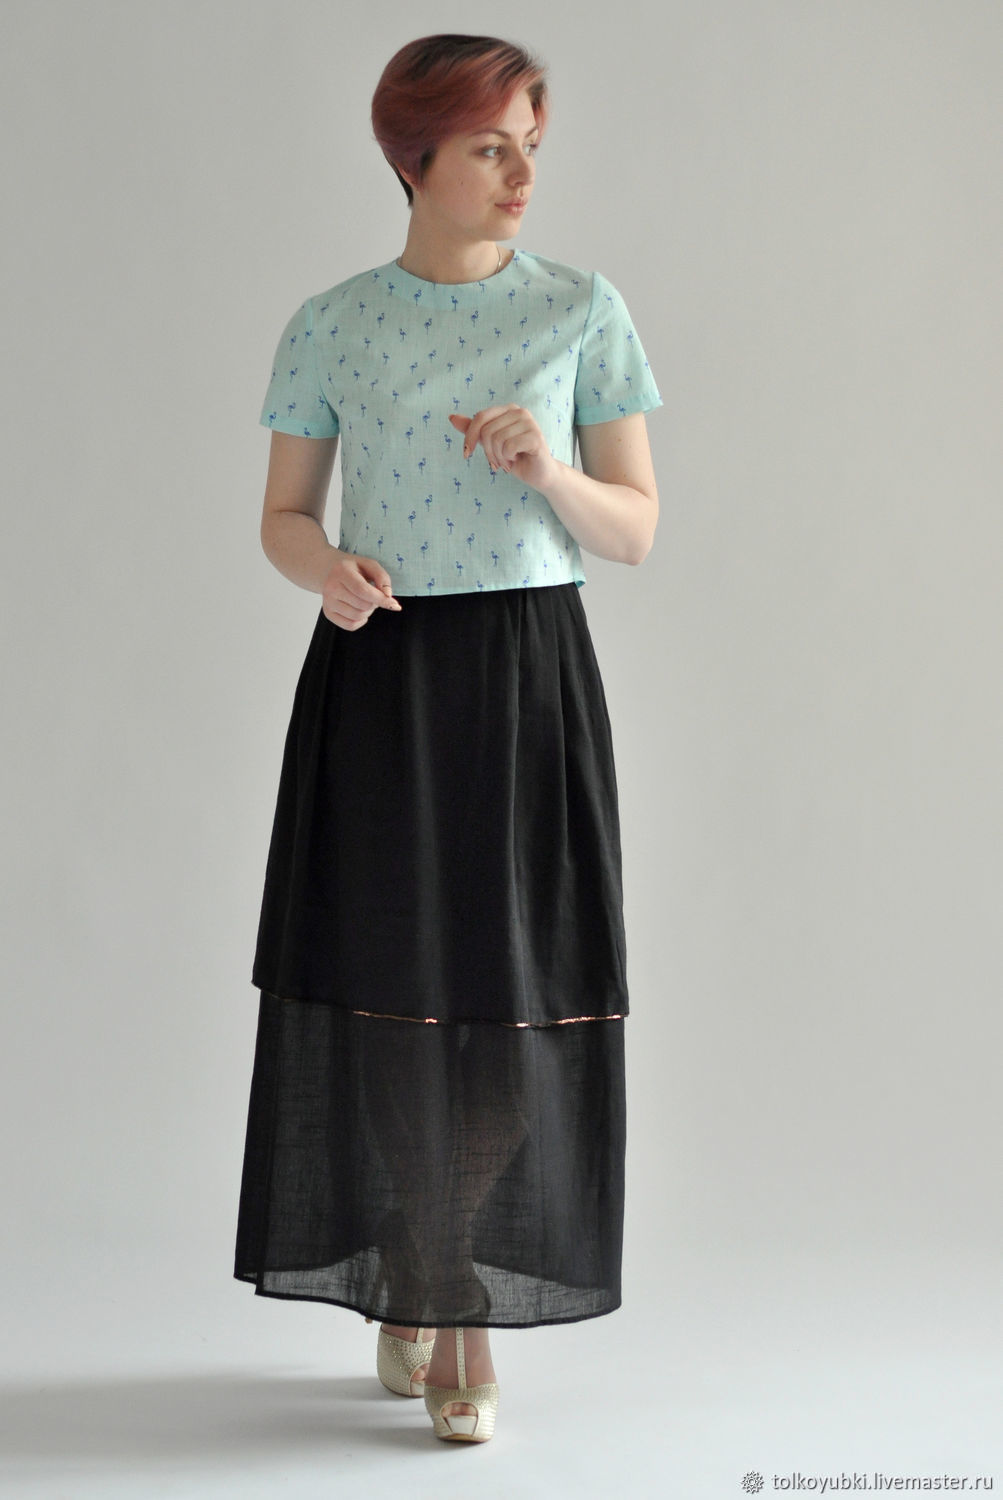 Skirt marlewski black cotton 100, Skirts, Novosibirsk,  Фото №1